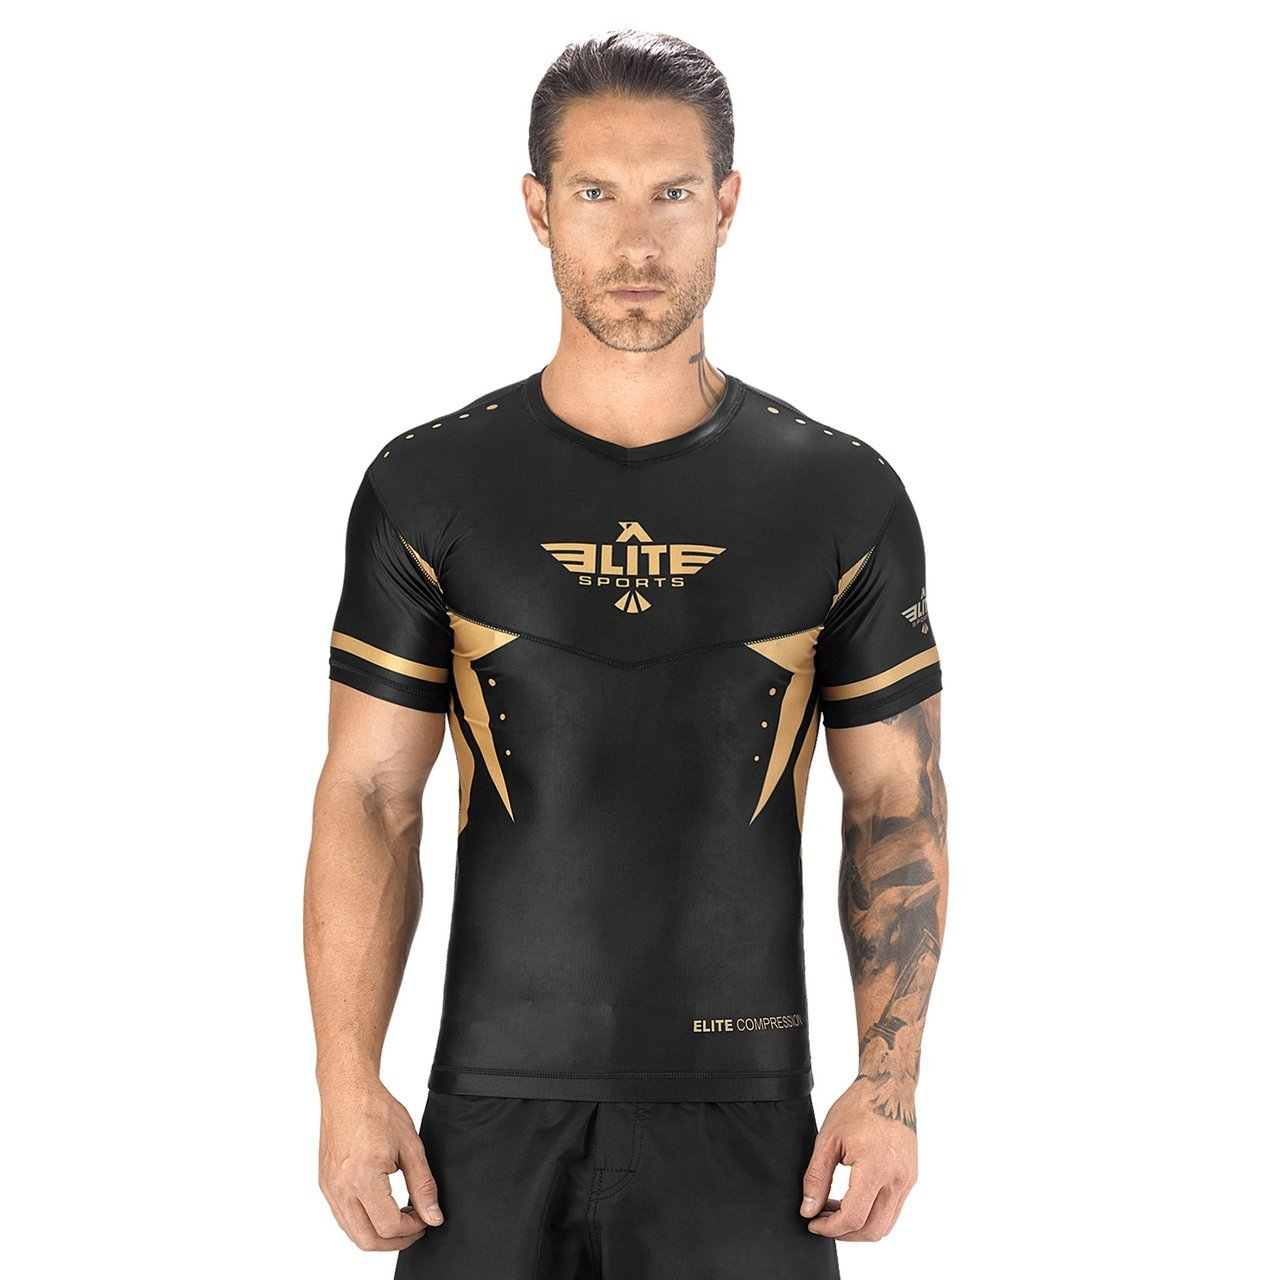 Elite Sports Star Series Sublimation Black/Gold Short Sleeve Brazilian Jiu Jitsu BJJ Rash Guard